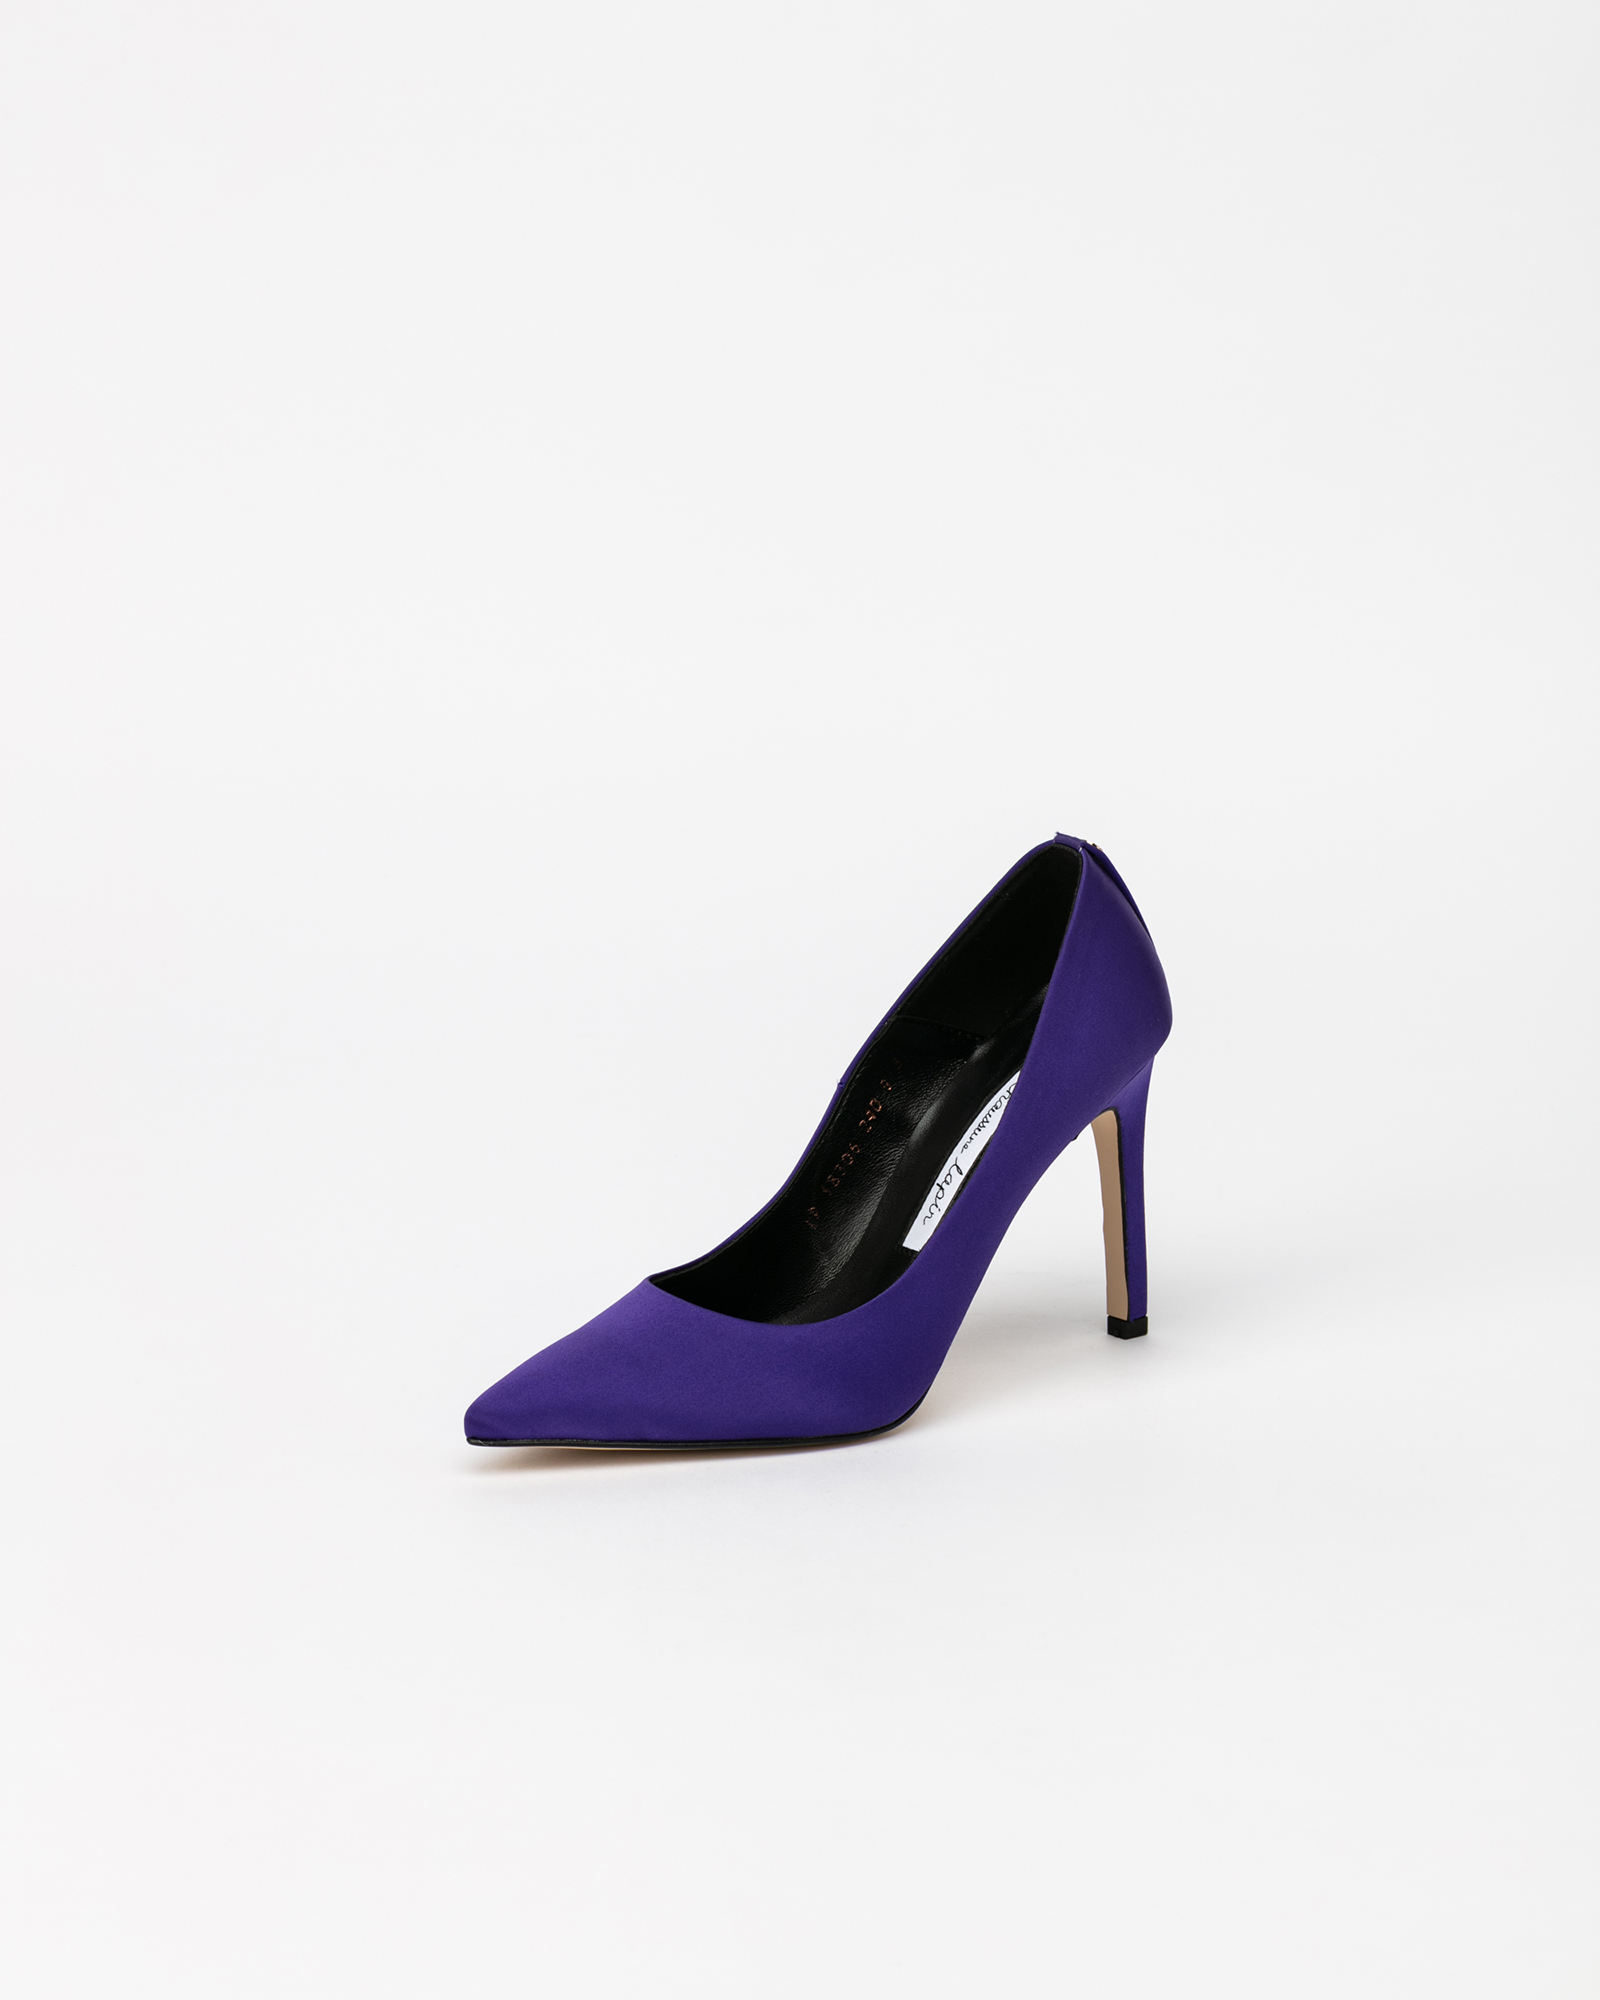 Boulon Stiletto Pumps in Cobalt Satin